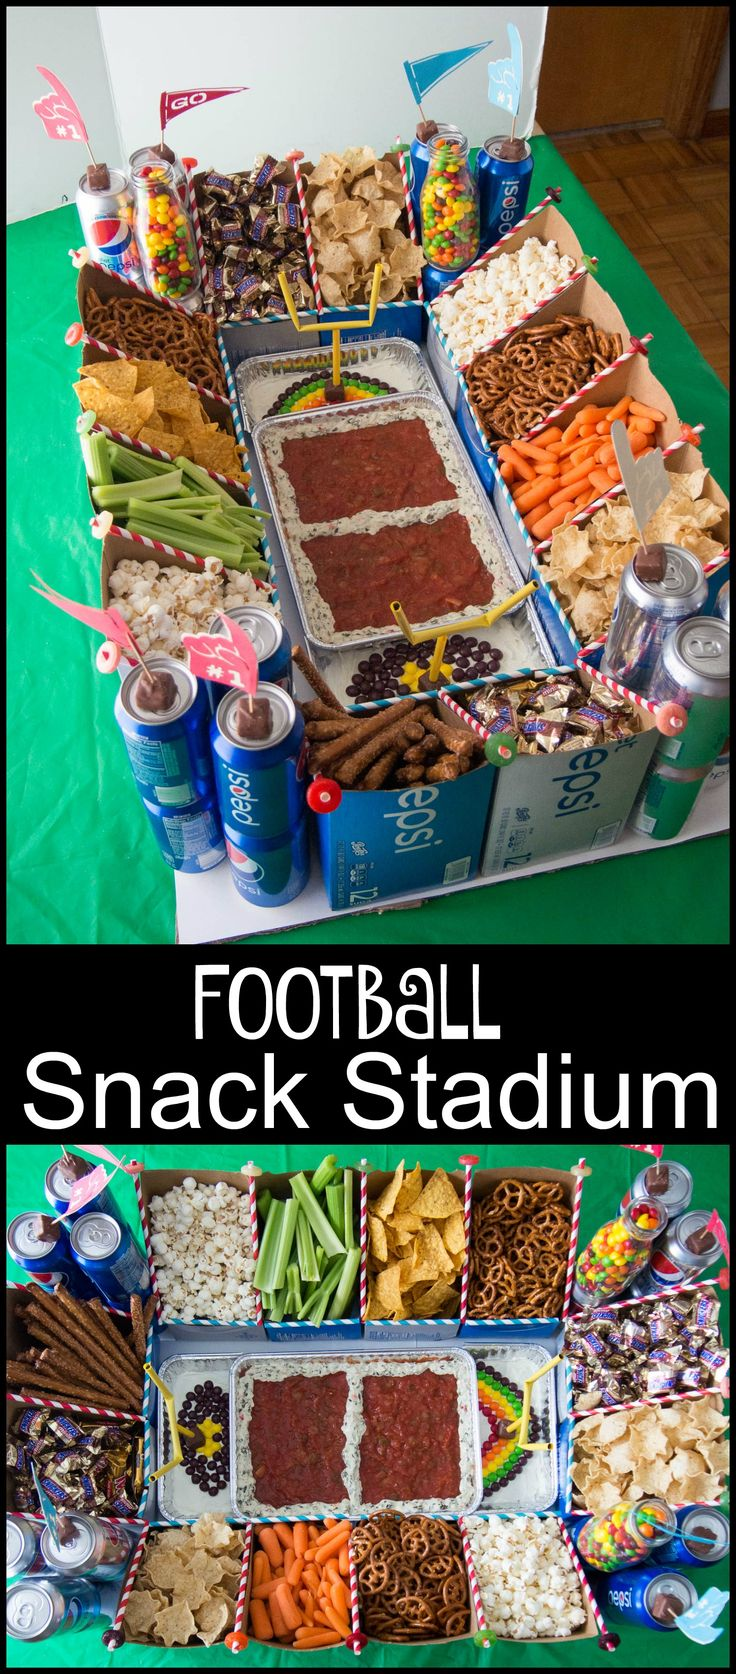 Ultimate Football Snack Stadium made by using cardboard soda cartons. Perfect for holding all your snacks and celebrating the Big Game with a football party. #GameDayGlory (ad)